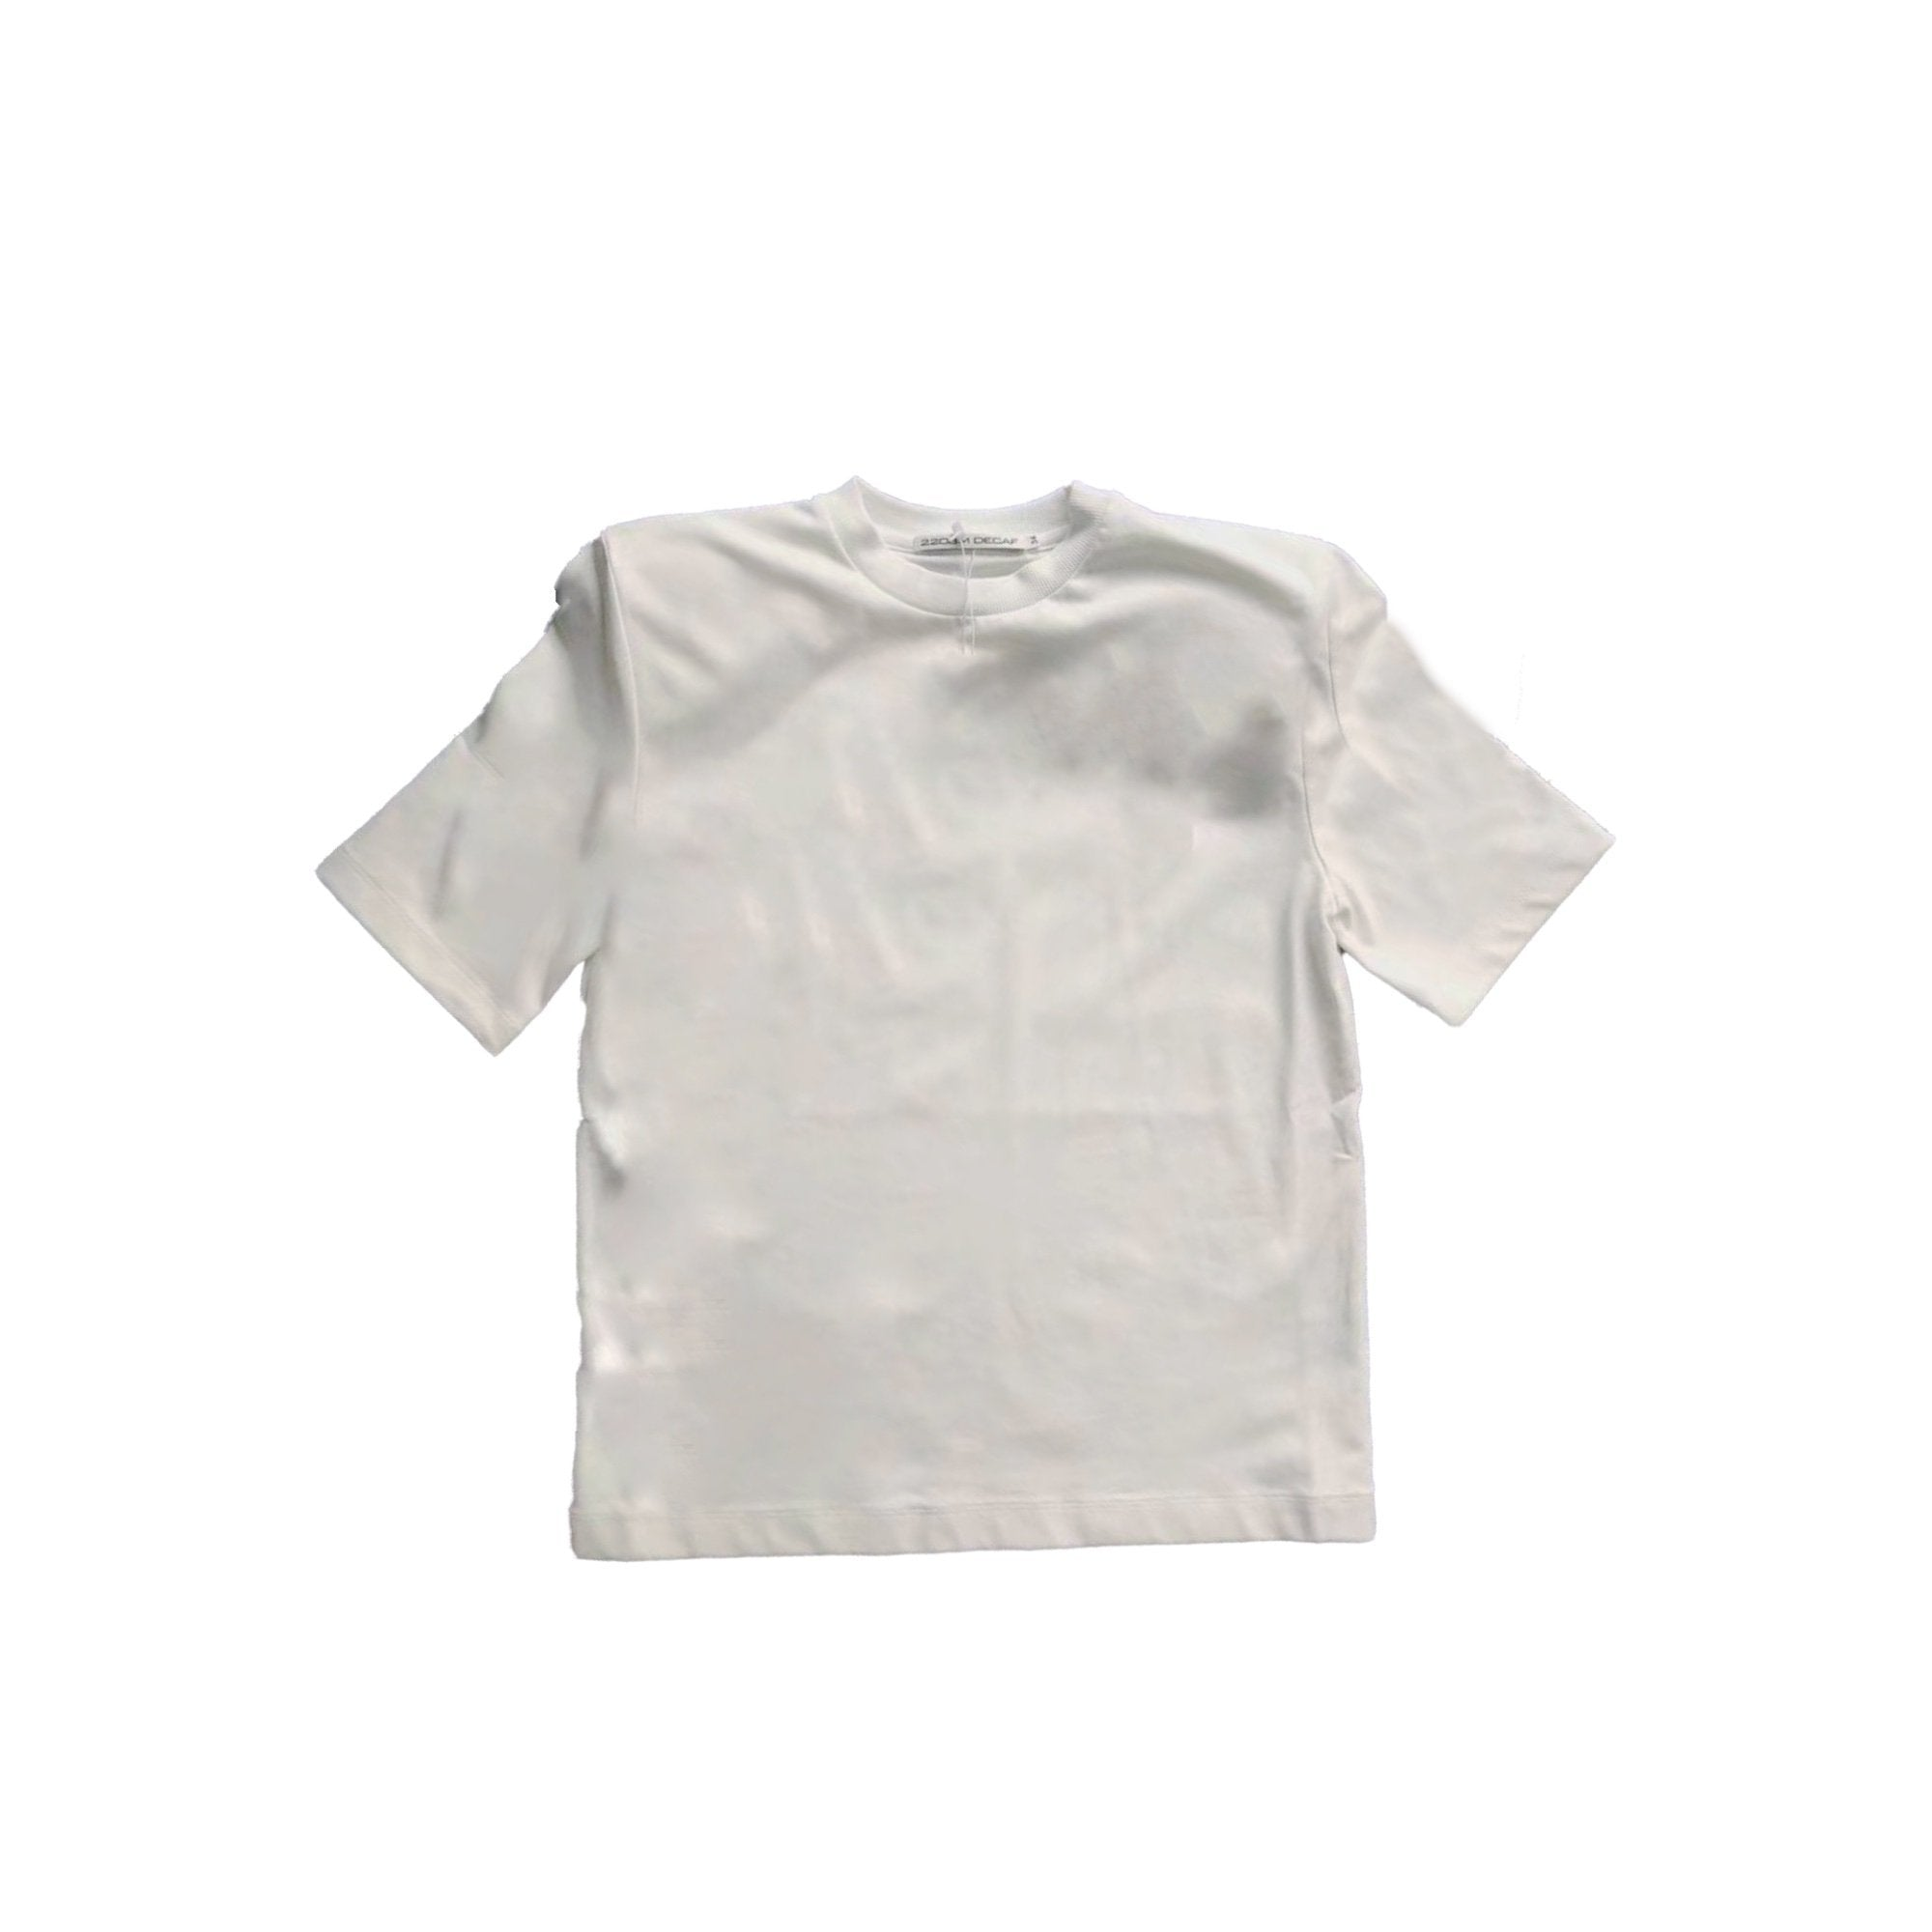 2208M DECAF White Shoulder Pads Tee | MADA IN CHINA